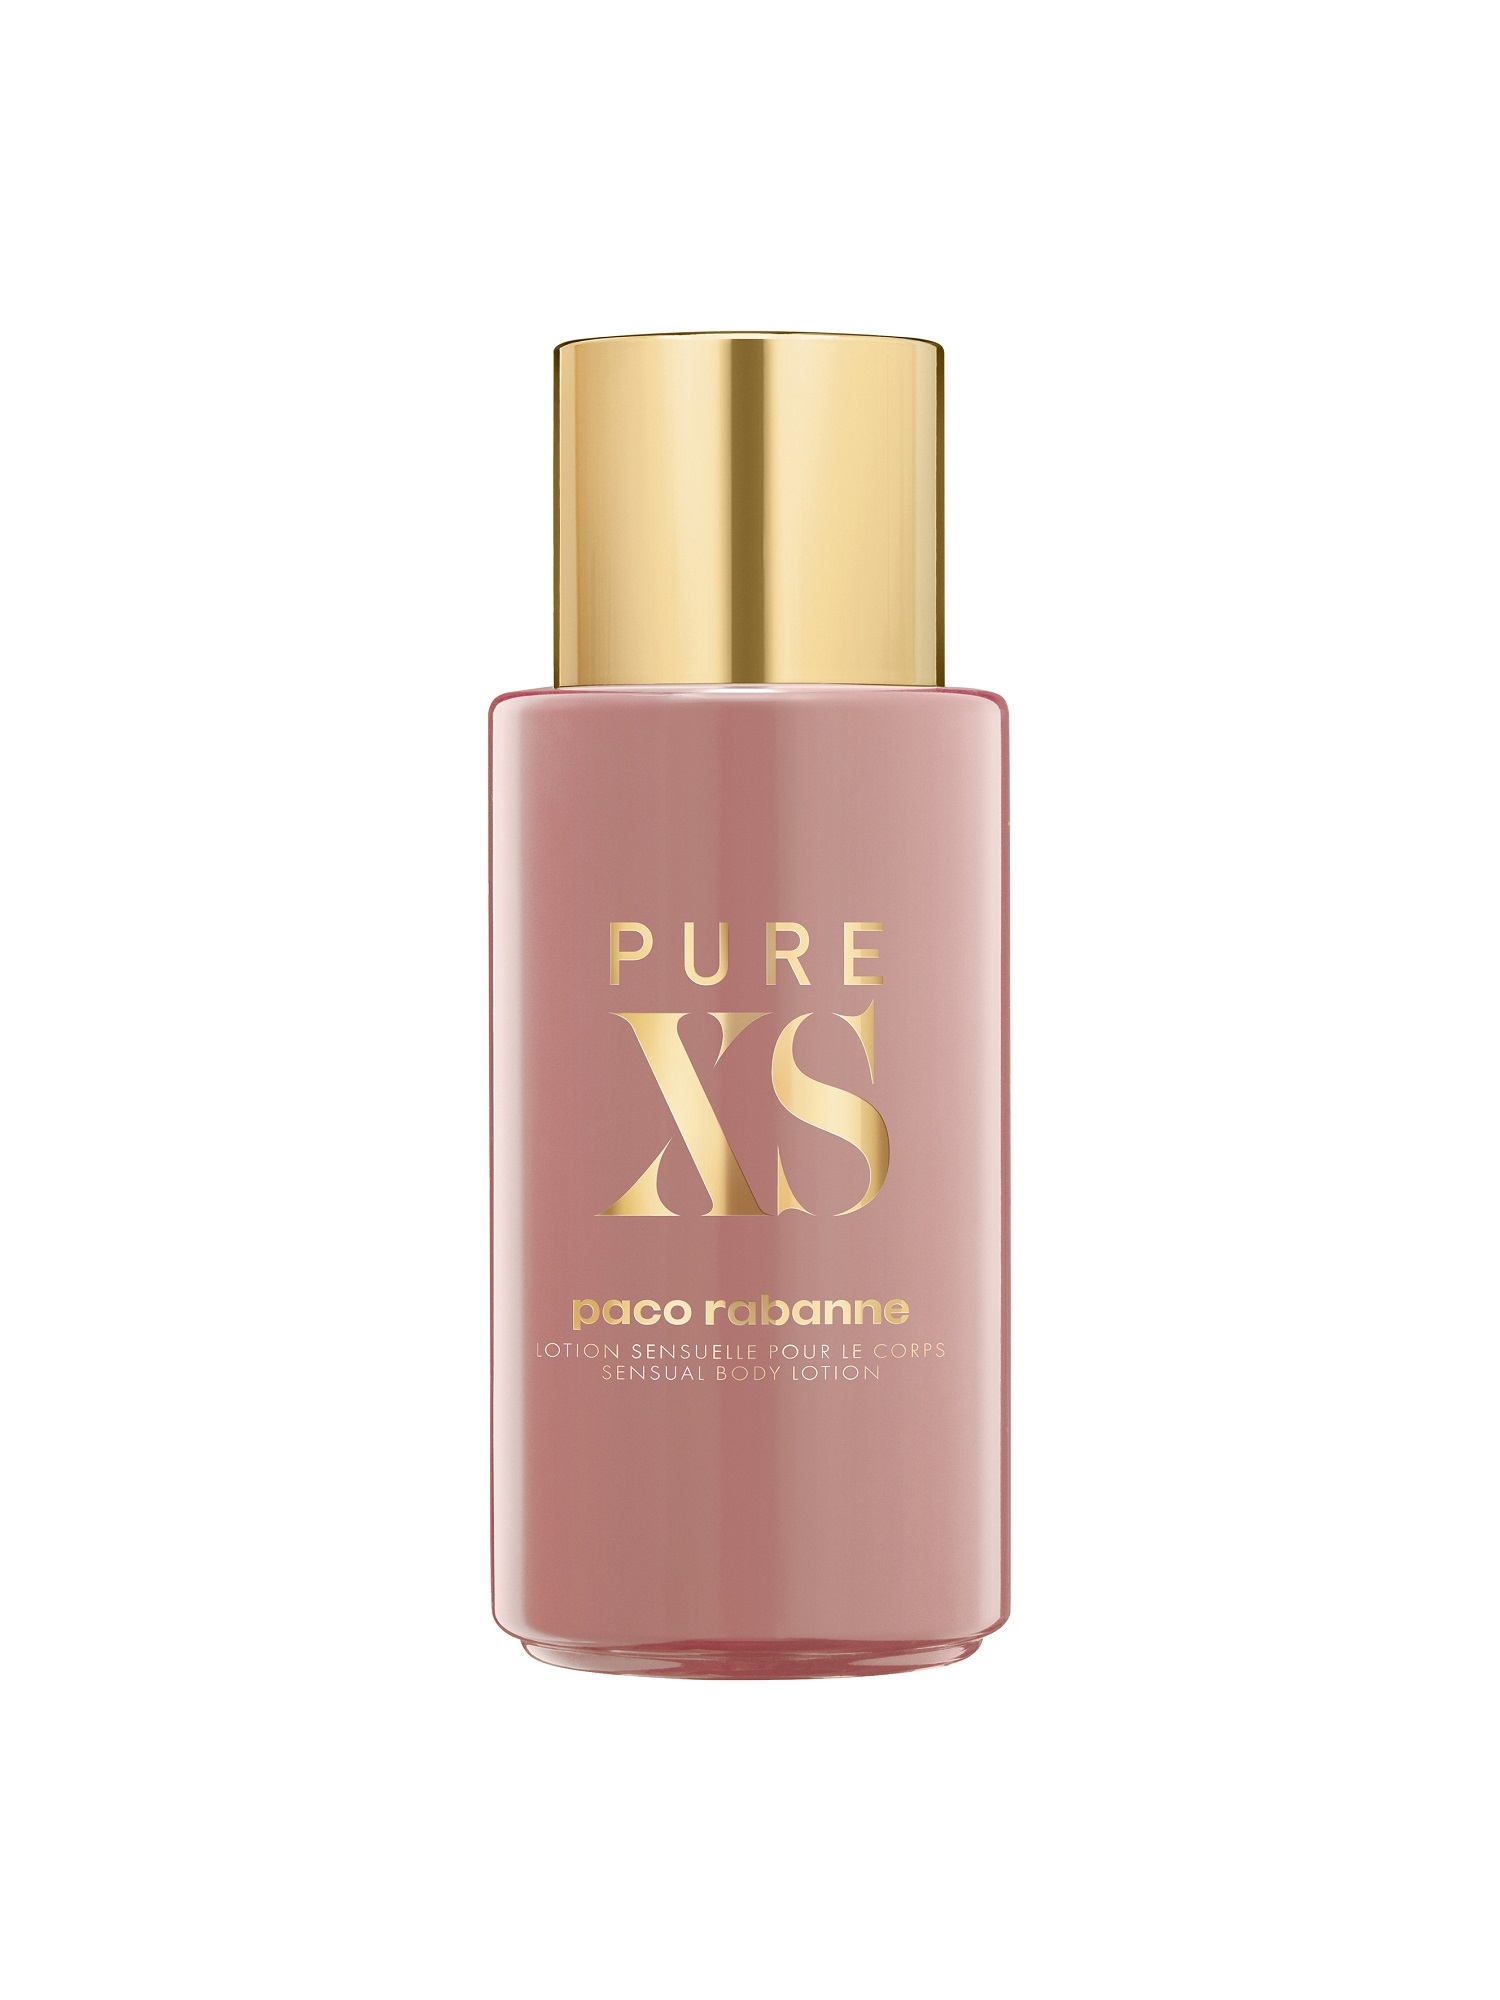 Paco Rabanne Pure XS For Her Body Lotion 5.3oz (150ml)